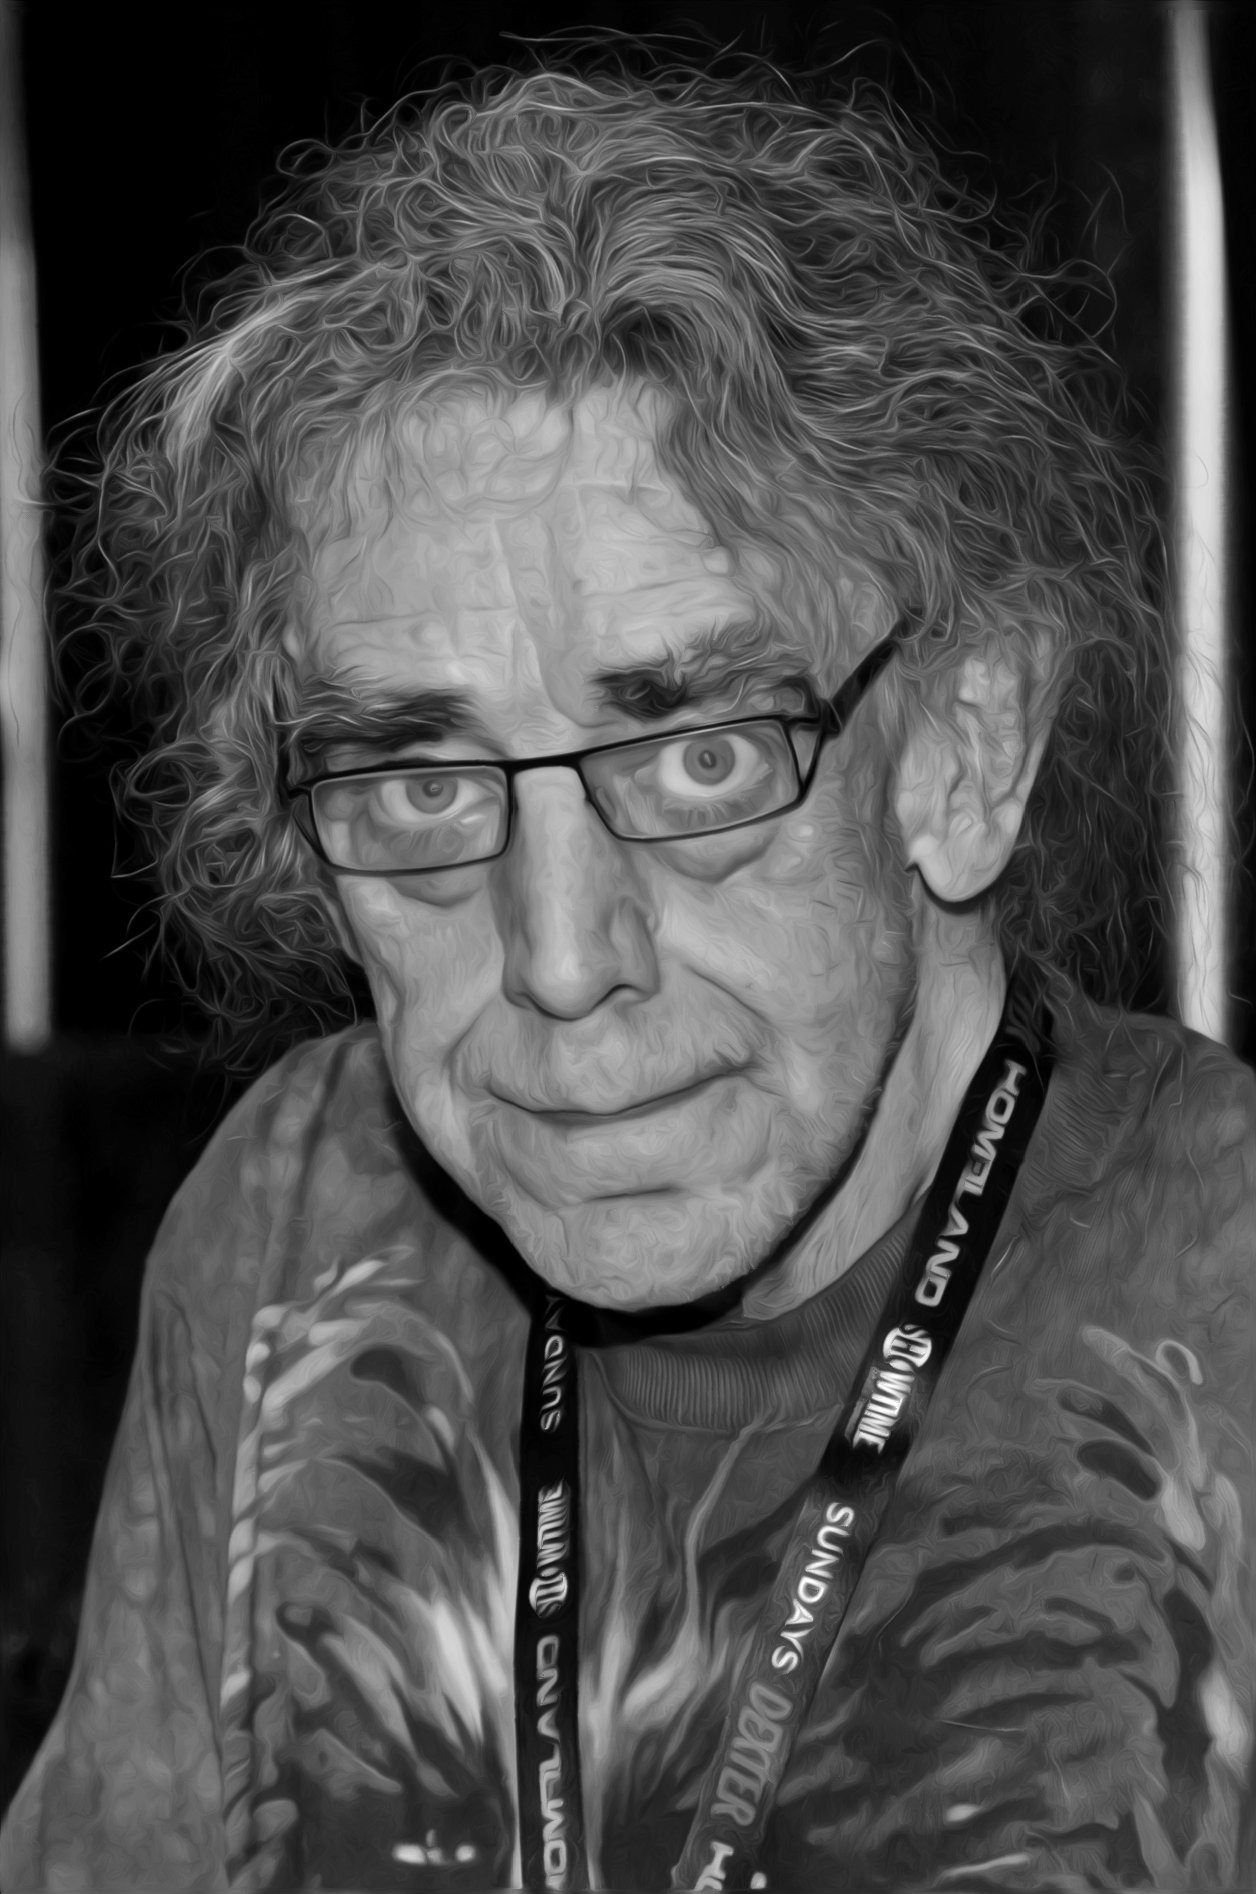 Communication on this topic: Susan Conway, peter-mayhew-born-1944/